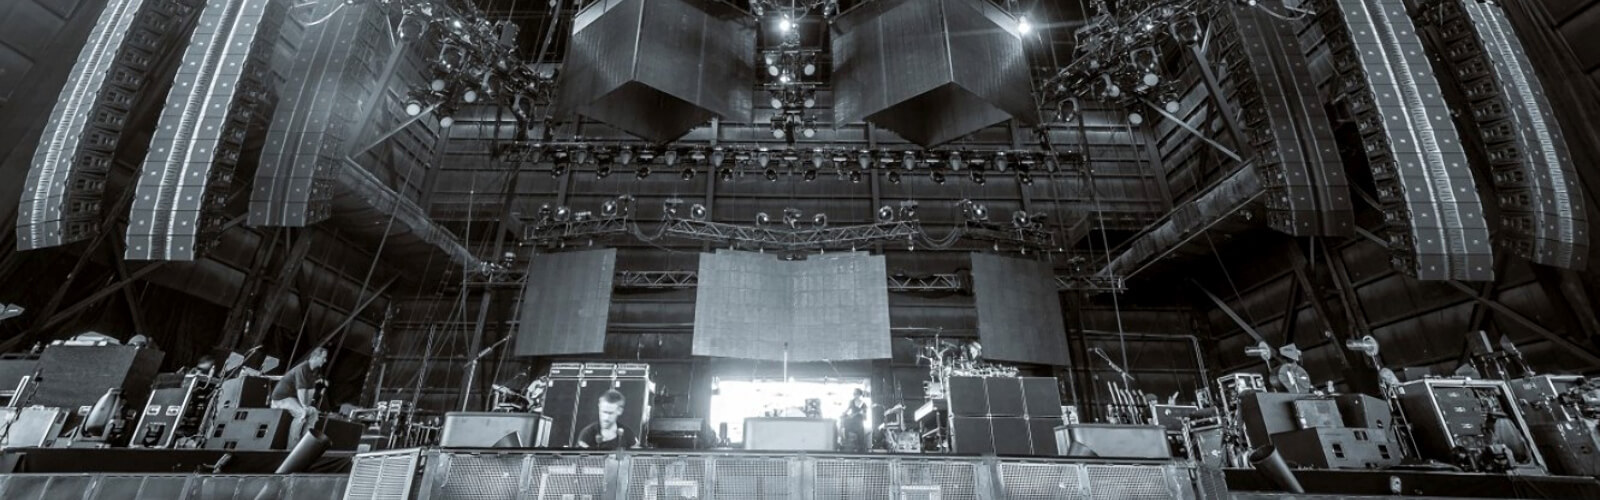 image of a stage being set up